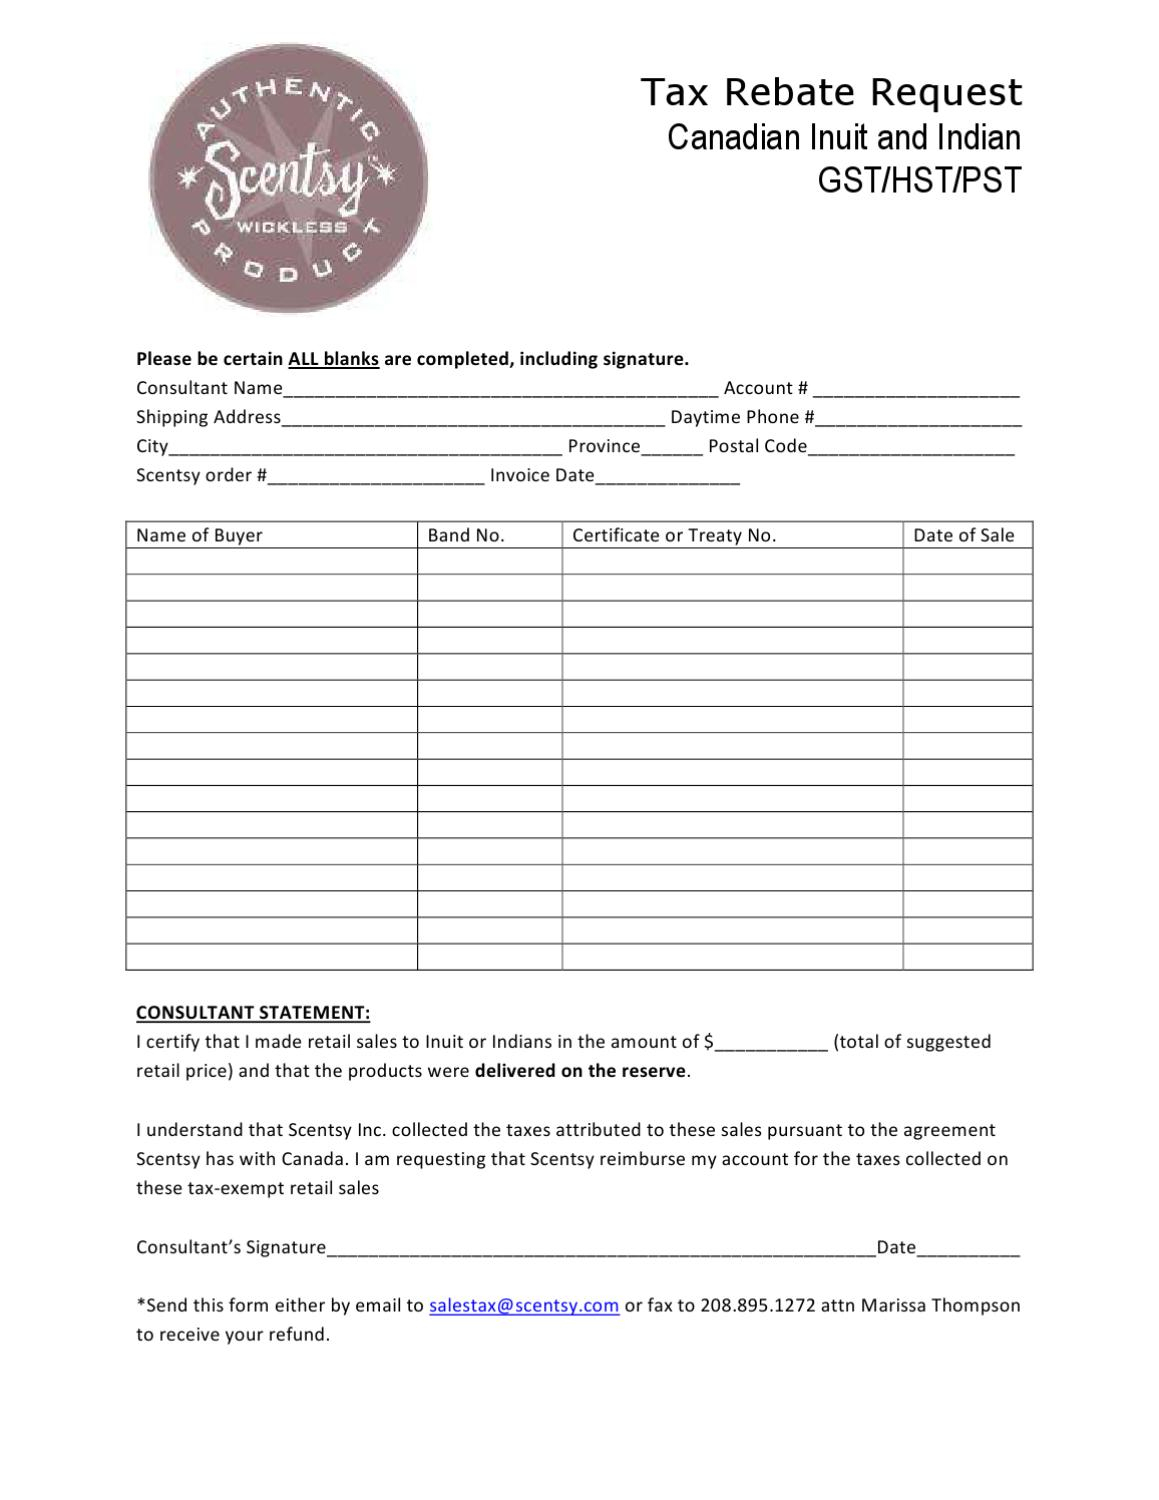 Native Tax Rebate Form (Canada)Natalie Zuidhof - Issuu - Free Printable Scentsy Order Forms